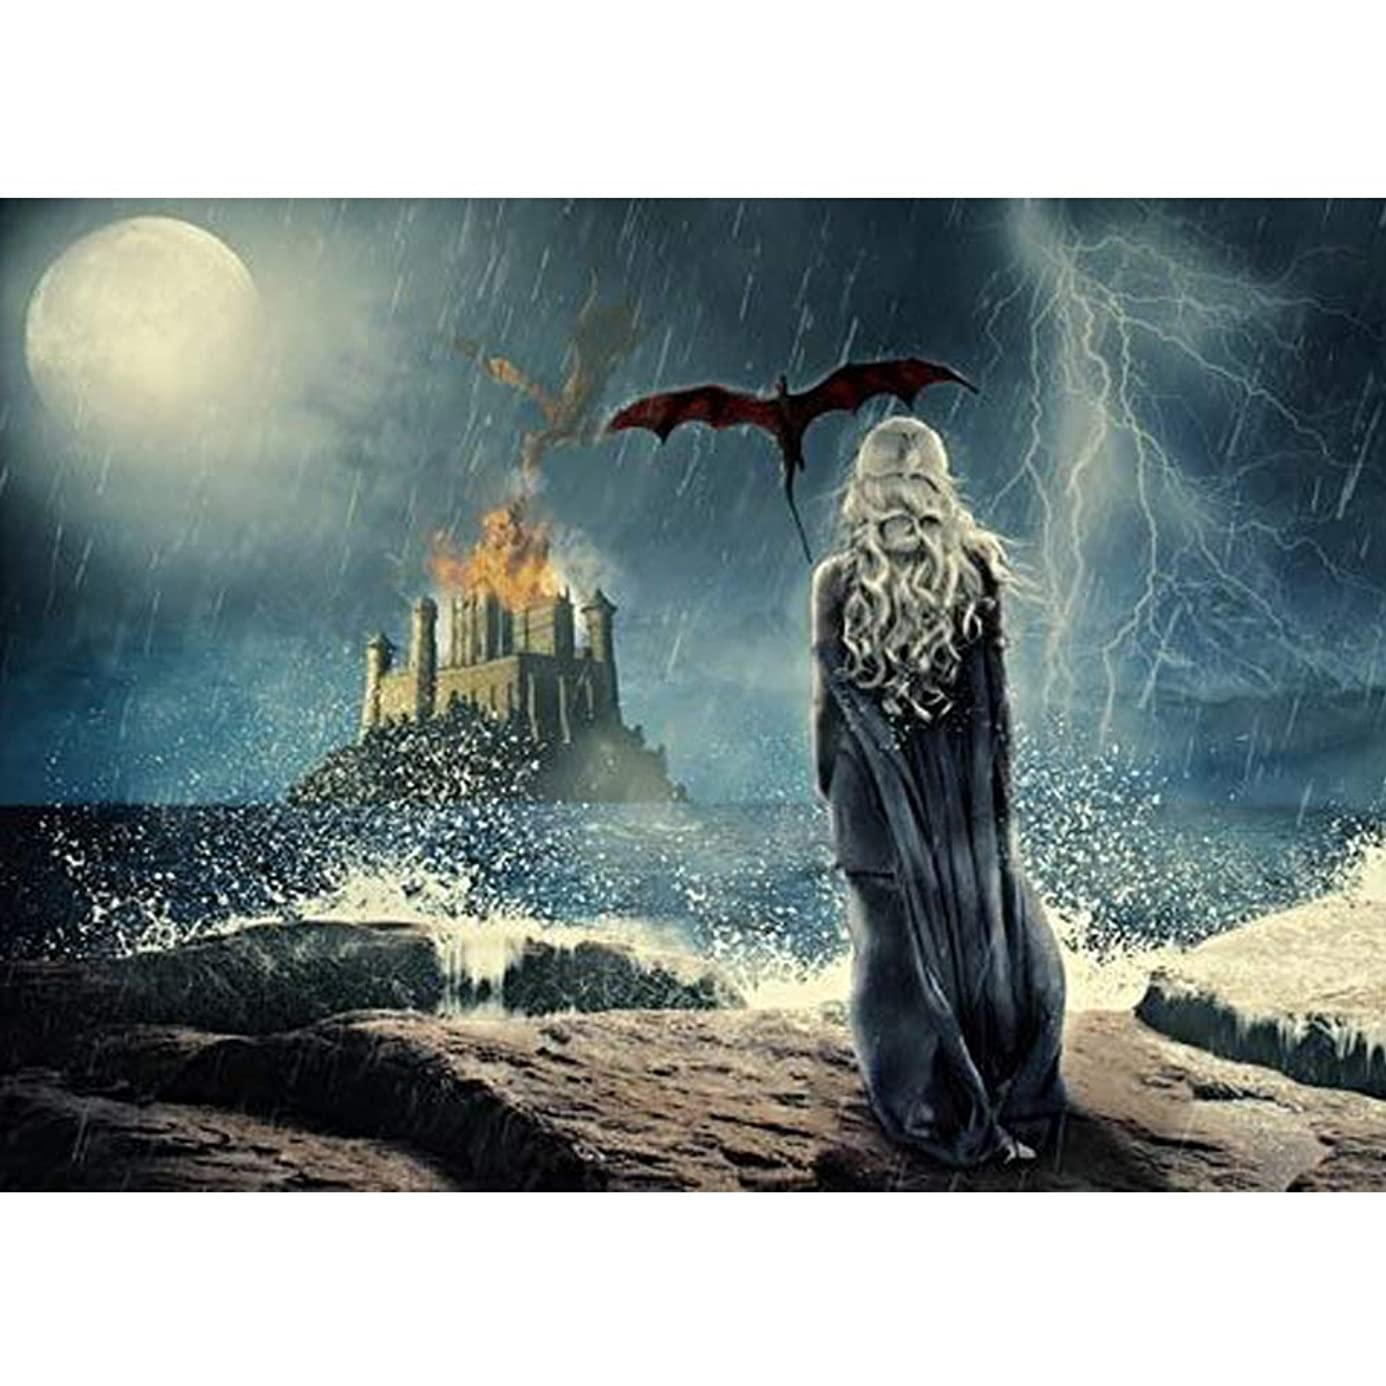 DIY 5D Diamond Painting Game of Thrones Series by Number Kits, Painting Cross Stitch Full Drill Crystal Rhinestone Embroidery Pictures Arts Craft for Home Wall Decor Gift (A, 30x40 cm) yln7666517